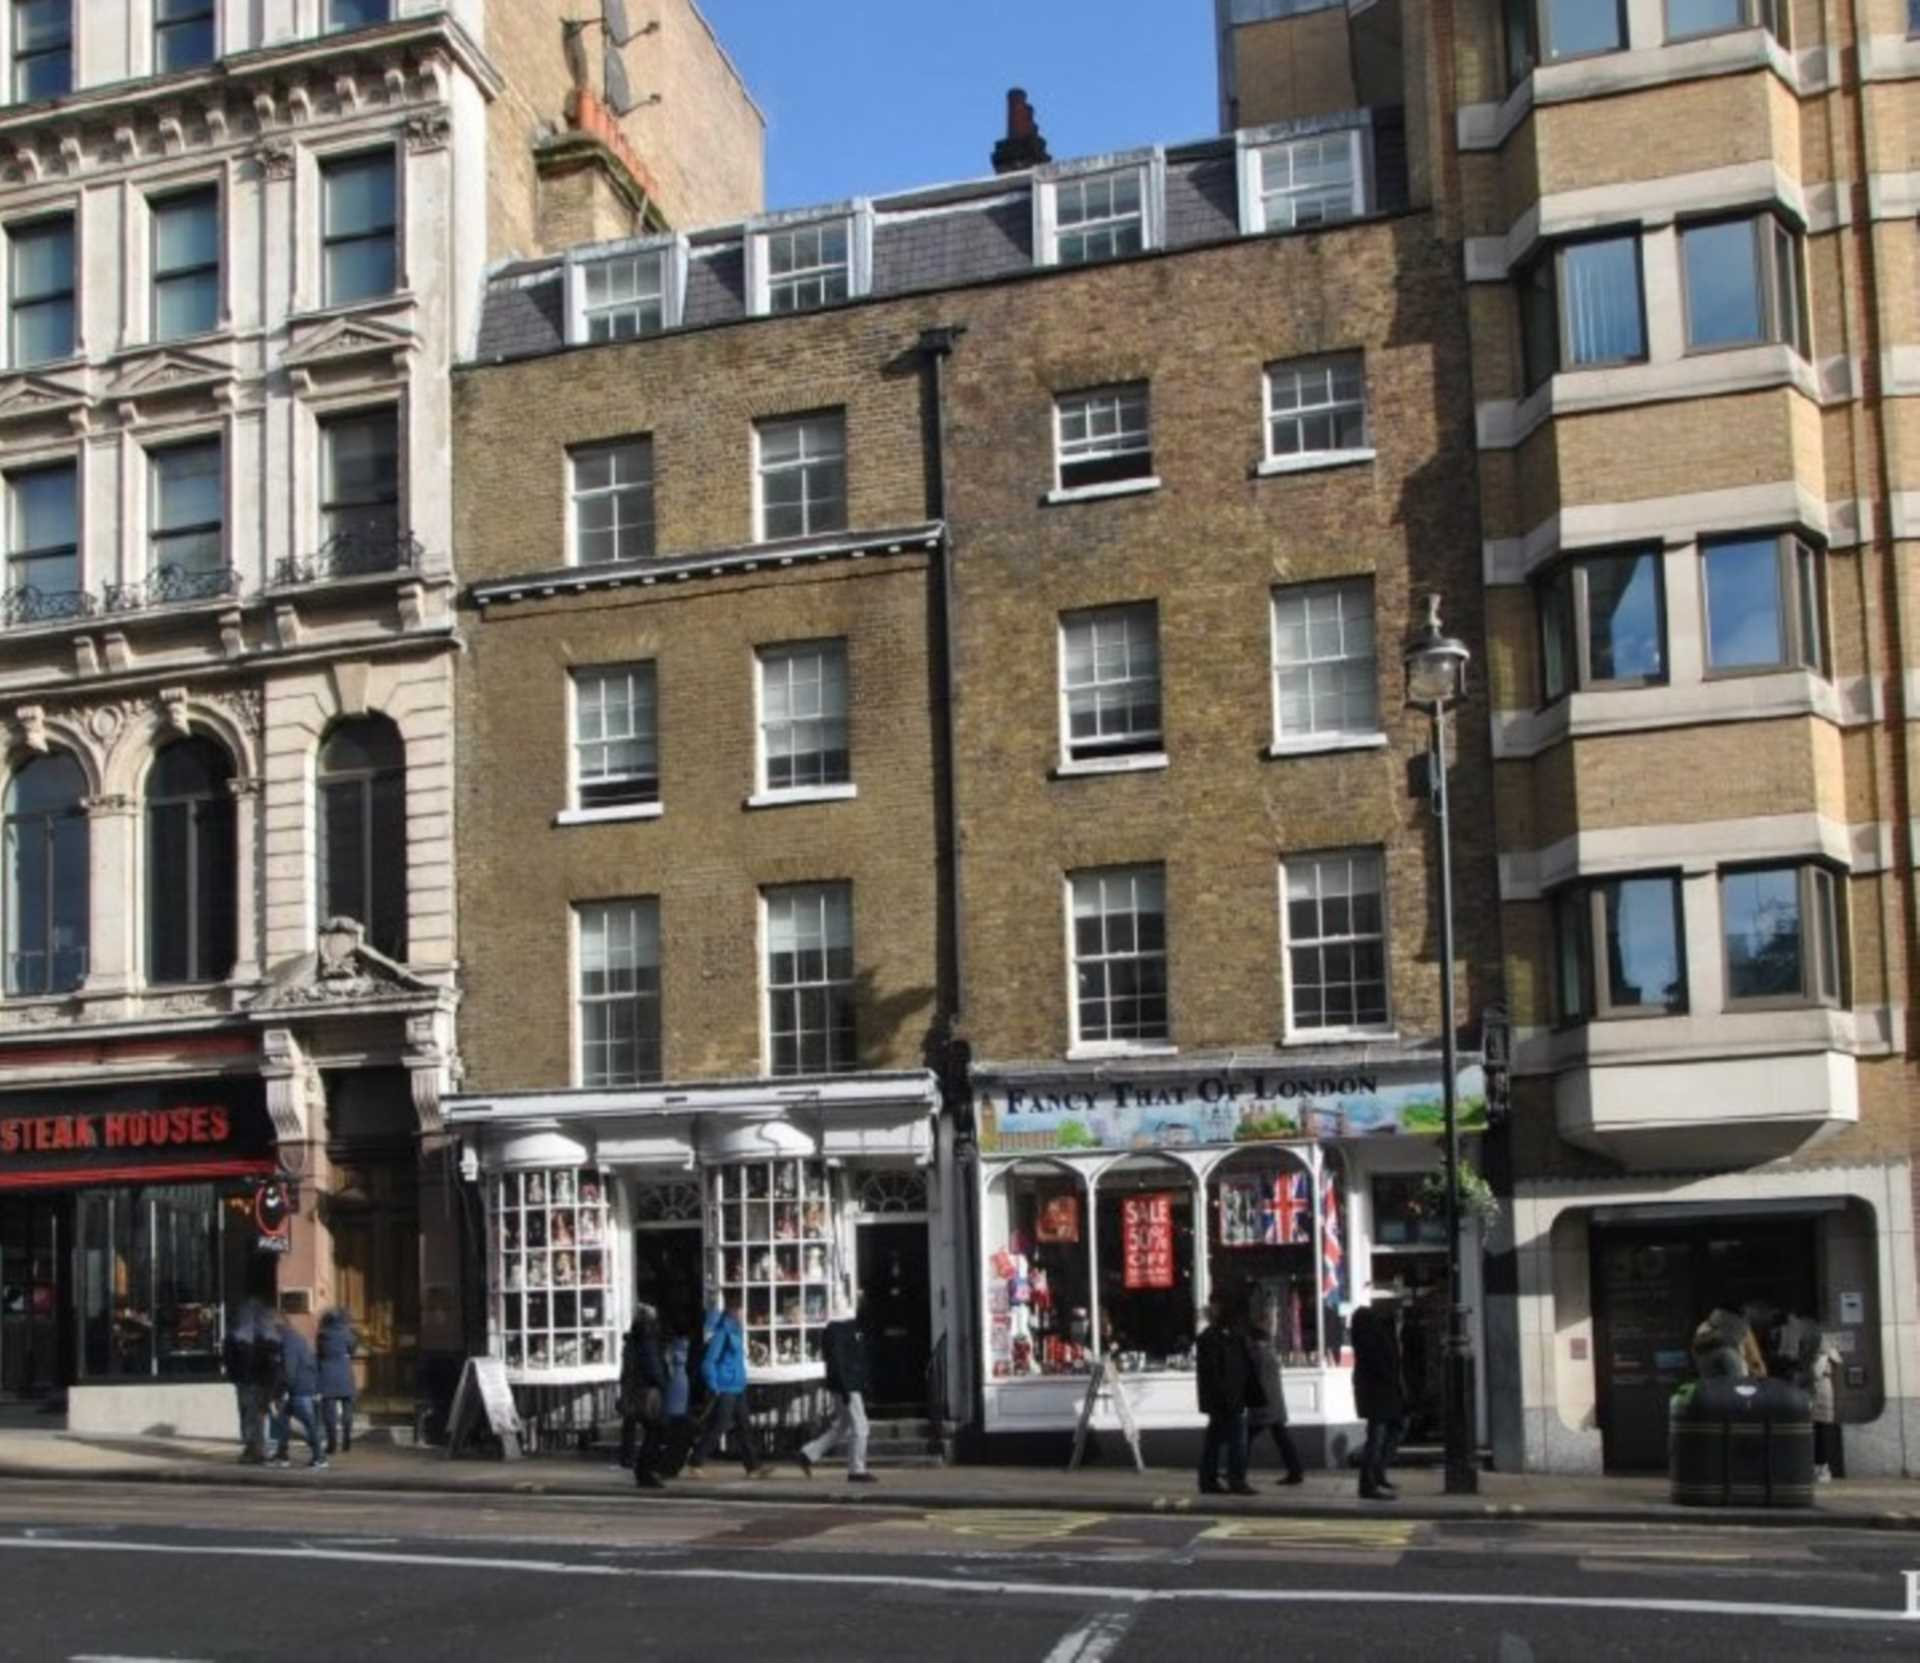 0 bed Restaurant for rent in London. From Next Property - London